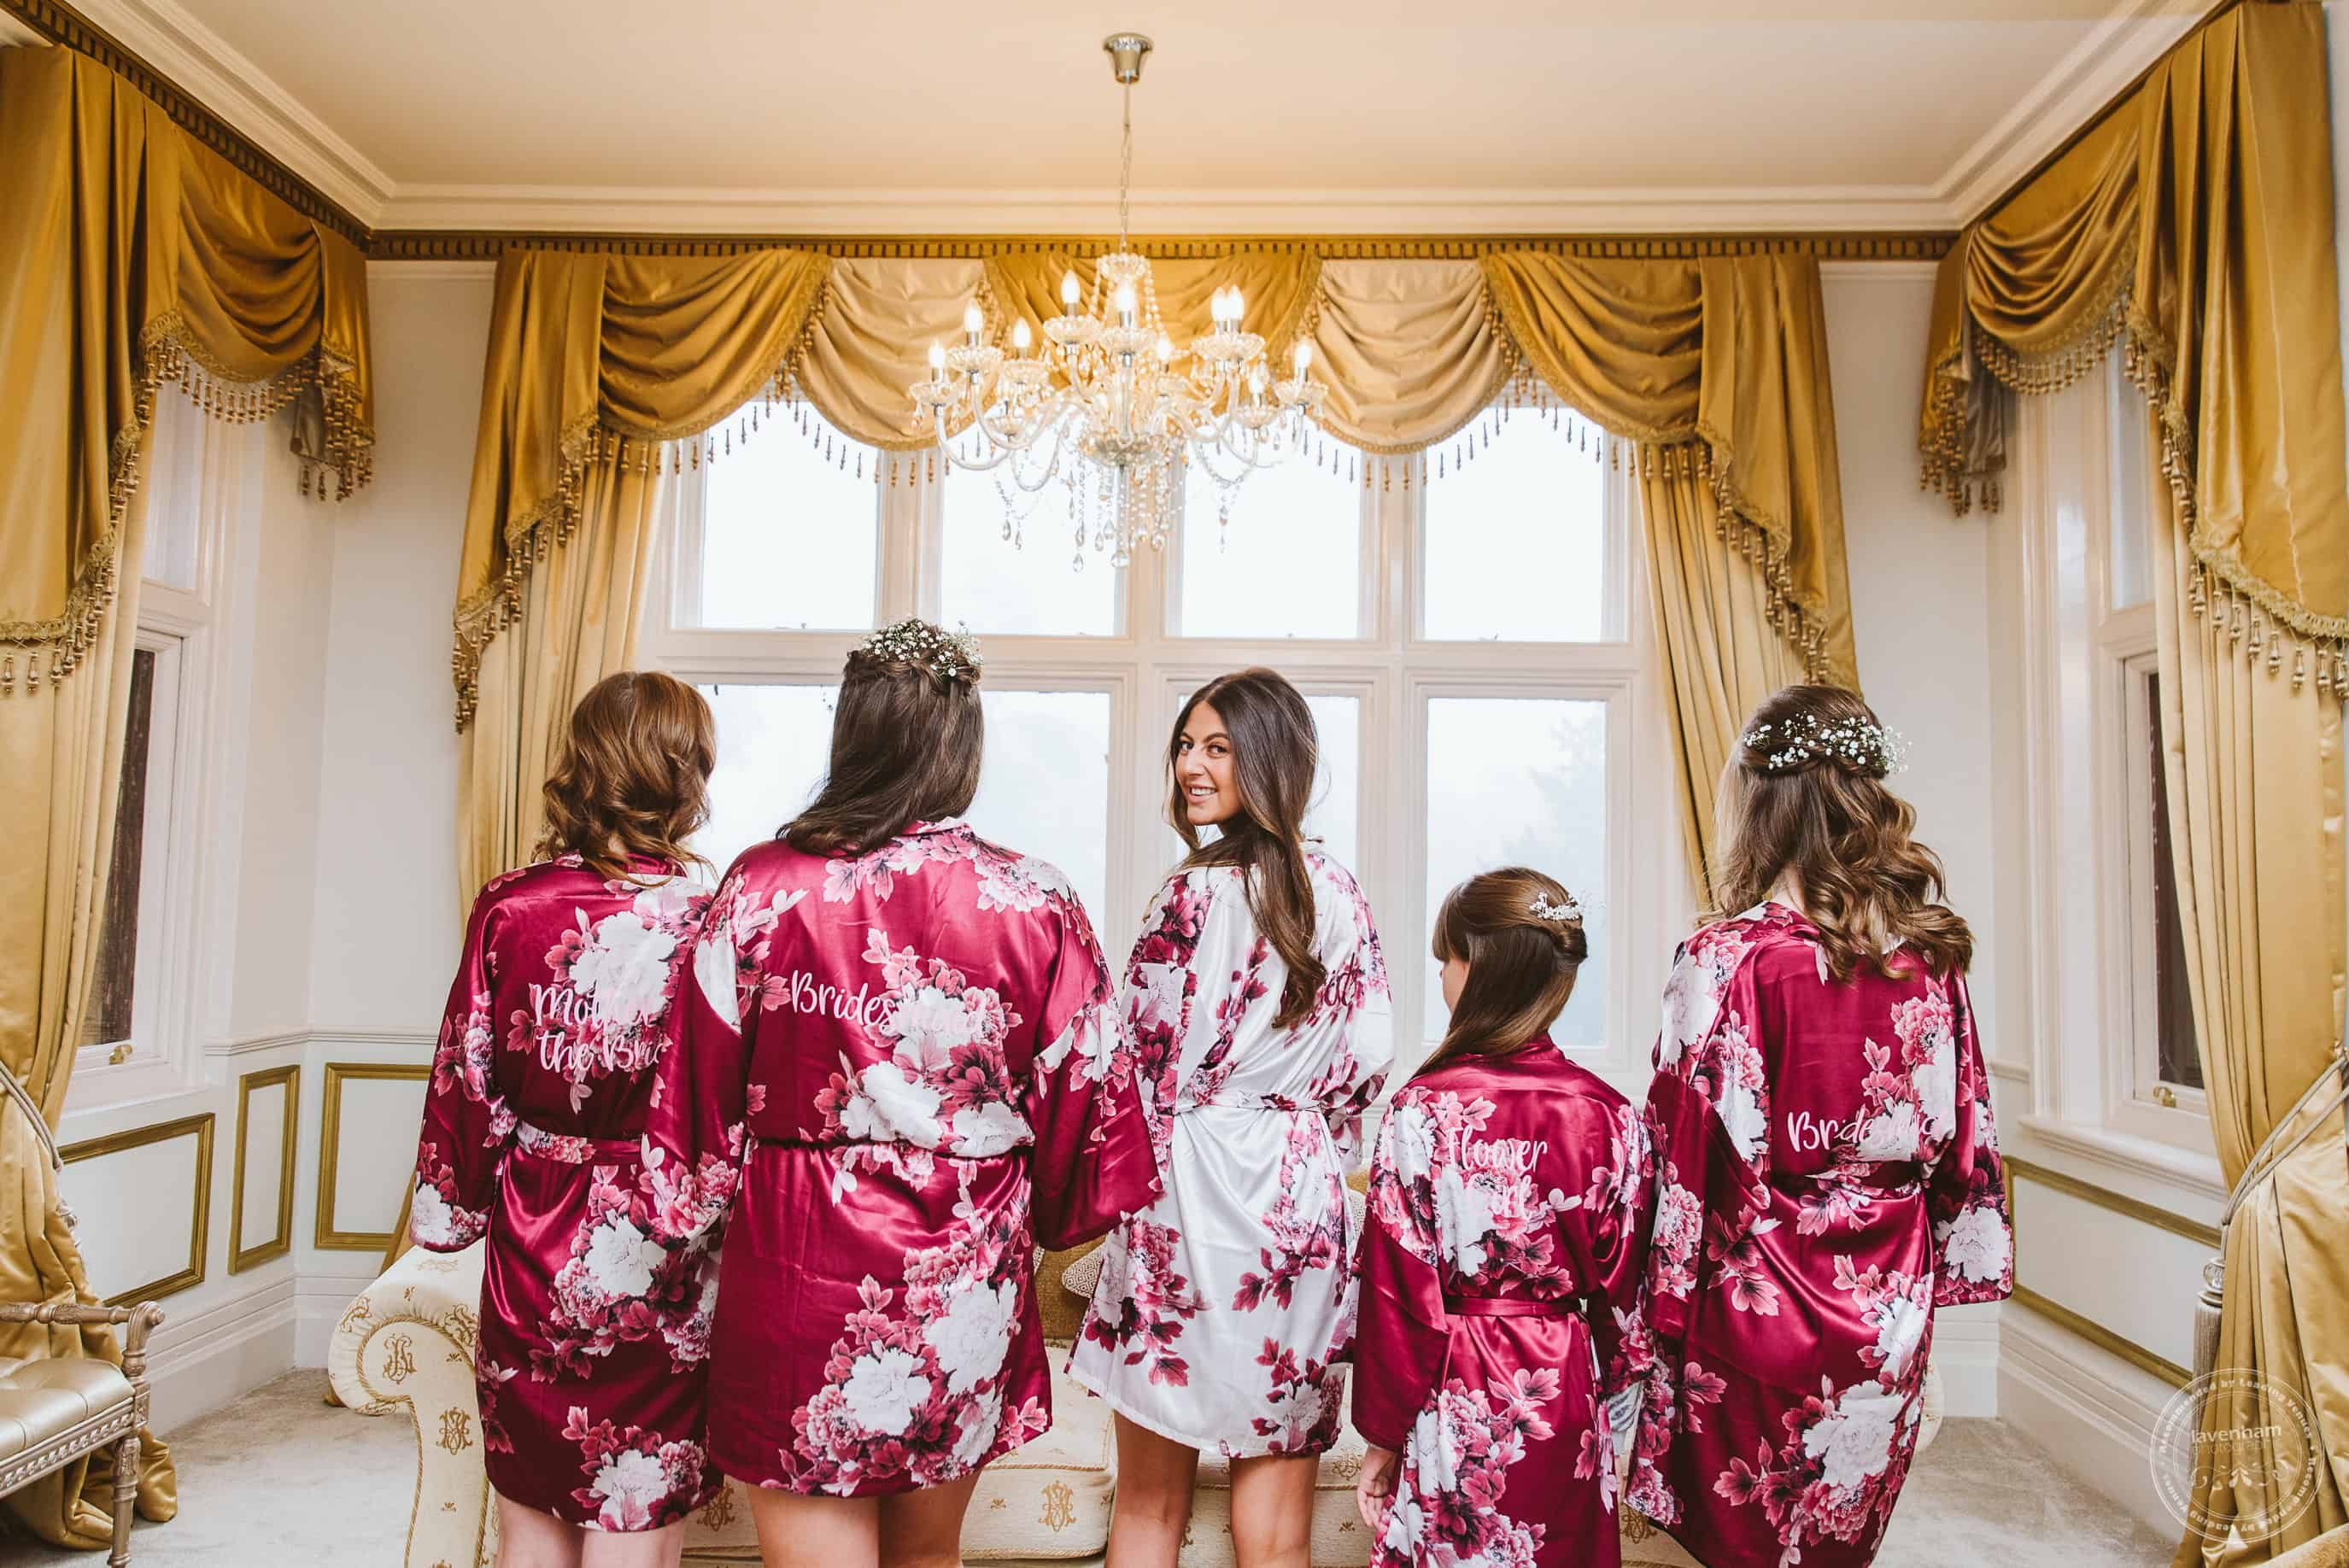 301119 Holmewood Hall Wedding Photographer 032